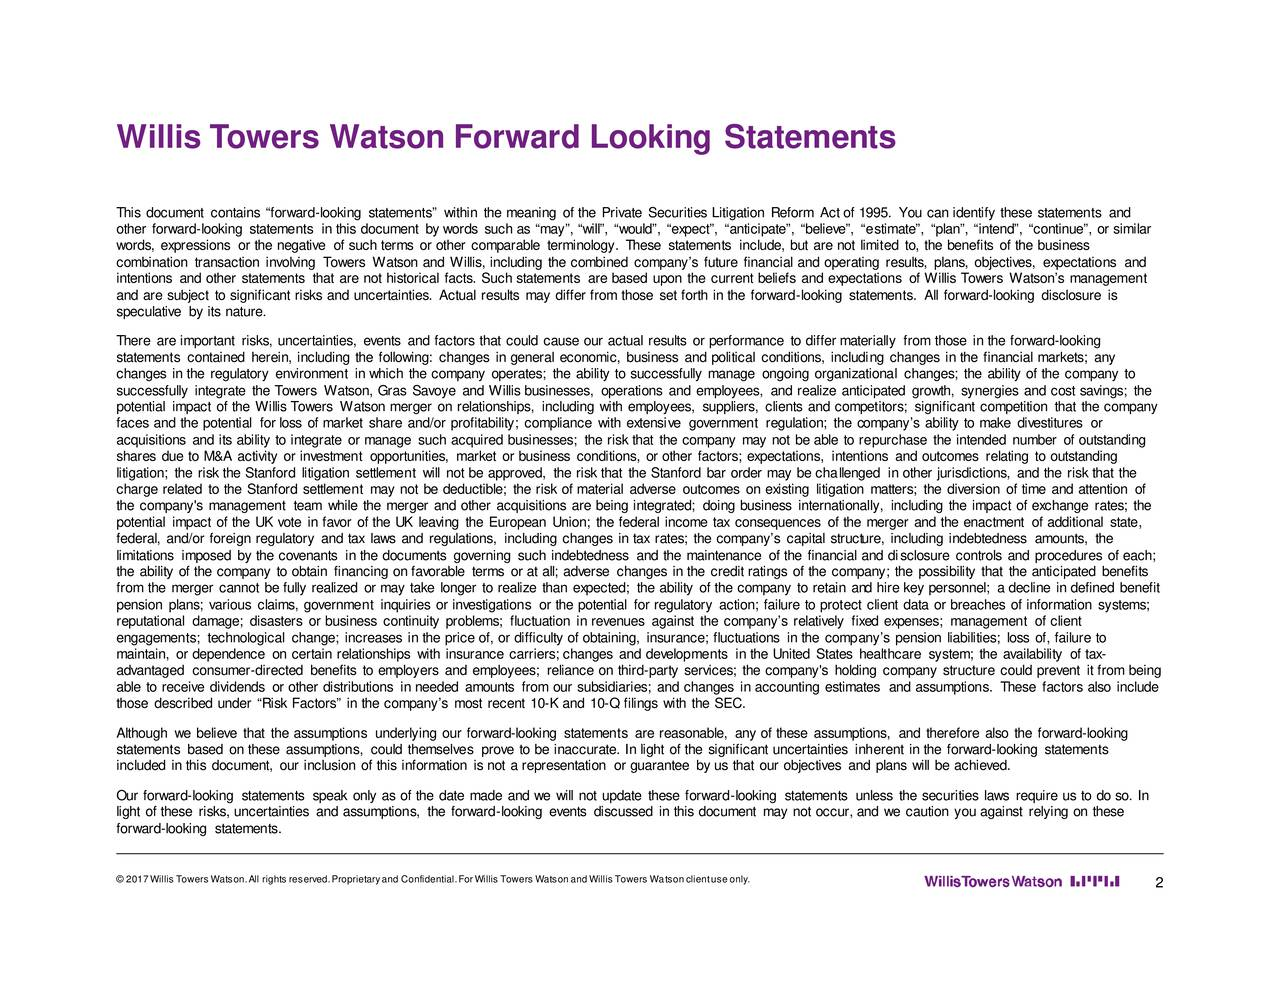 This document contains forward -looking statements within the meaning of the Private Securities Litigation Reform Actof 1995. You can identify these statements and other forward-looking statements inthis document bywords suchas may, will, would, expect, anticipate, believe, e stimate, plan, intend, continue, or similar words, expressions orthenegative ofsuchterms orother comparable terminology. These statements include, but arenot limit ed to, the benefits of the business combination transaction involving Towers Watson and Willis, including the combined companys future financial and opee rastltsgrlans, objectives, expectations and intentions and other statements that are not historical facts. Such statements are based upon the current beliefs and expetc ioas of Willis Towers Watsons management and are subject to significant risks and uncertainties. Actual results may differ from those set forth in the forward -looking st atements. All forward -looking disclosure is speculative by its nature. There are important risks, uncertainties, events and factors that could cause our actual results or performance to differ materiall y from those in the forward -looking statements contained herein, including the following: changes in general economic, business and political conditions, includi ng changes in the financial markets; any changes in the regulatory environment in which the company operates; the ability to successfully manage ongoing organilza cianages; the ability of the company to successfully integrate the Towers Watson, Gras Savoye and Willis businesses, operations and employees, and realize anticipated growth, synergies and cost savings; the potential impact of the Willis Towers Watson merger on relationships, including with employees, suppliers, clients and compet itors; significant competition that the company faces and the potential for loss of market share and/or profitability; compliance with extensive government regulation; to hepcanys ability to make divest